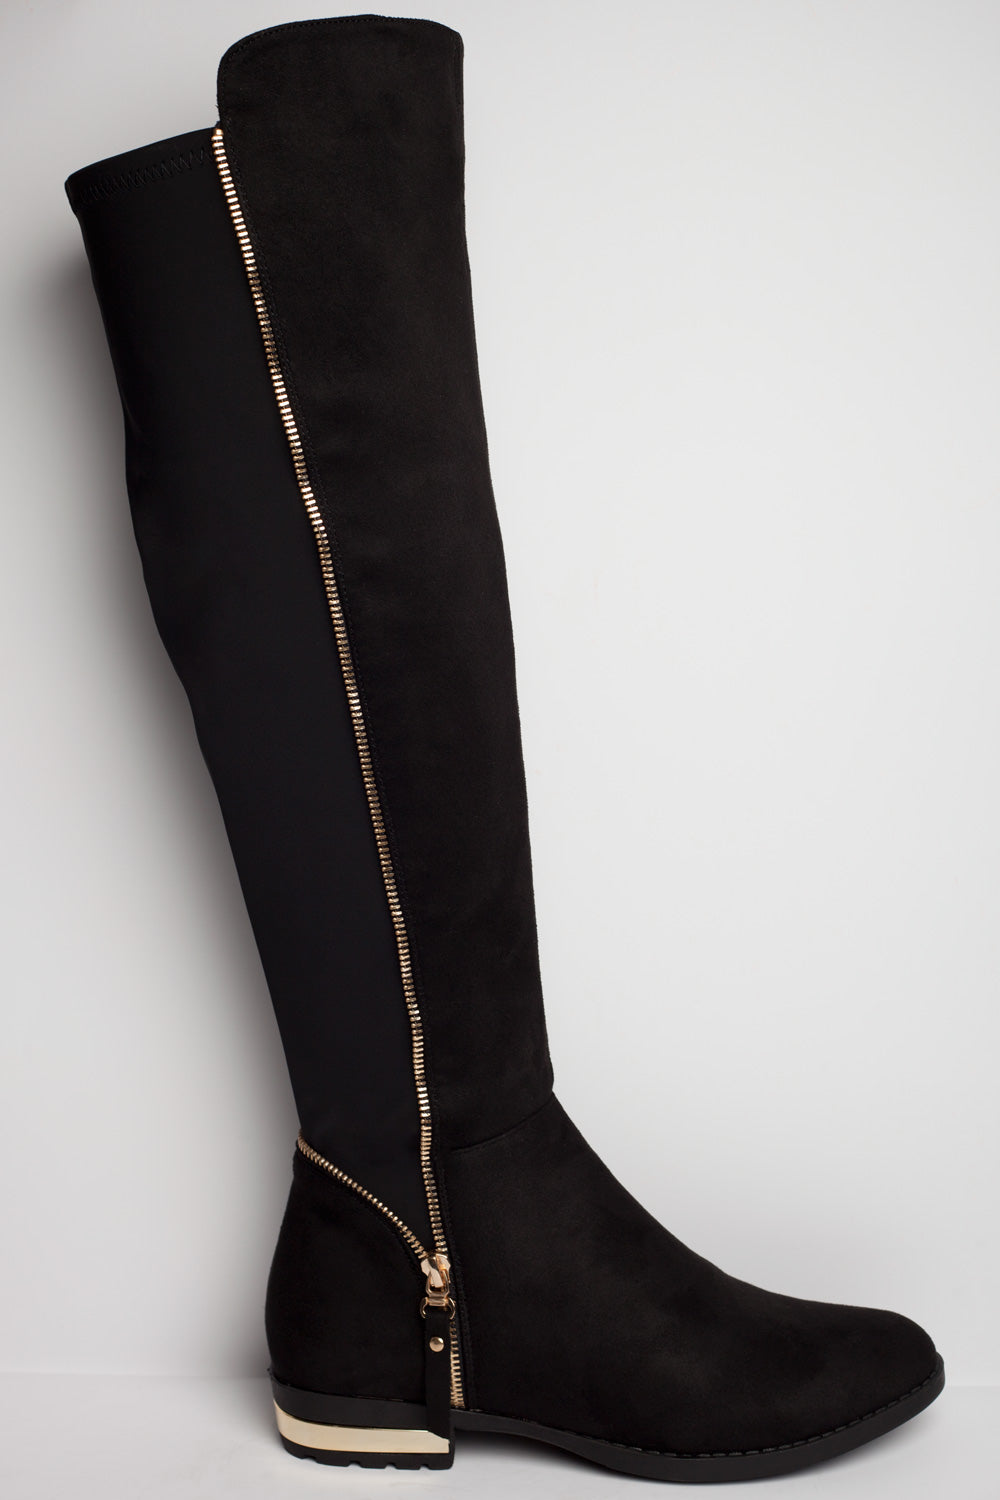 stretch fabric knee high boots uk